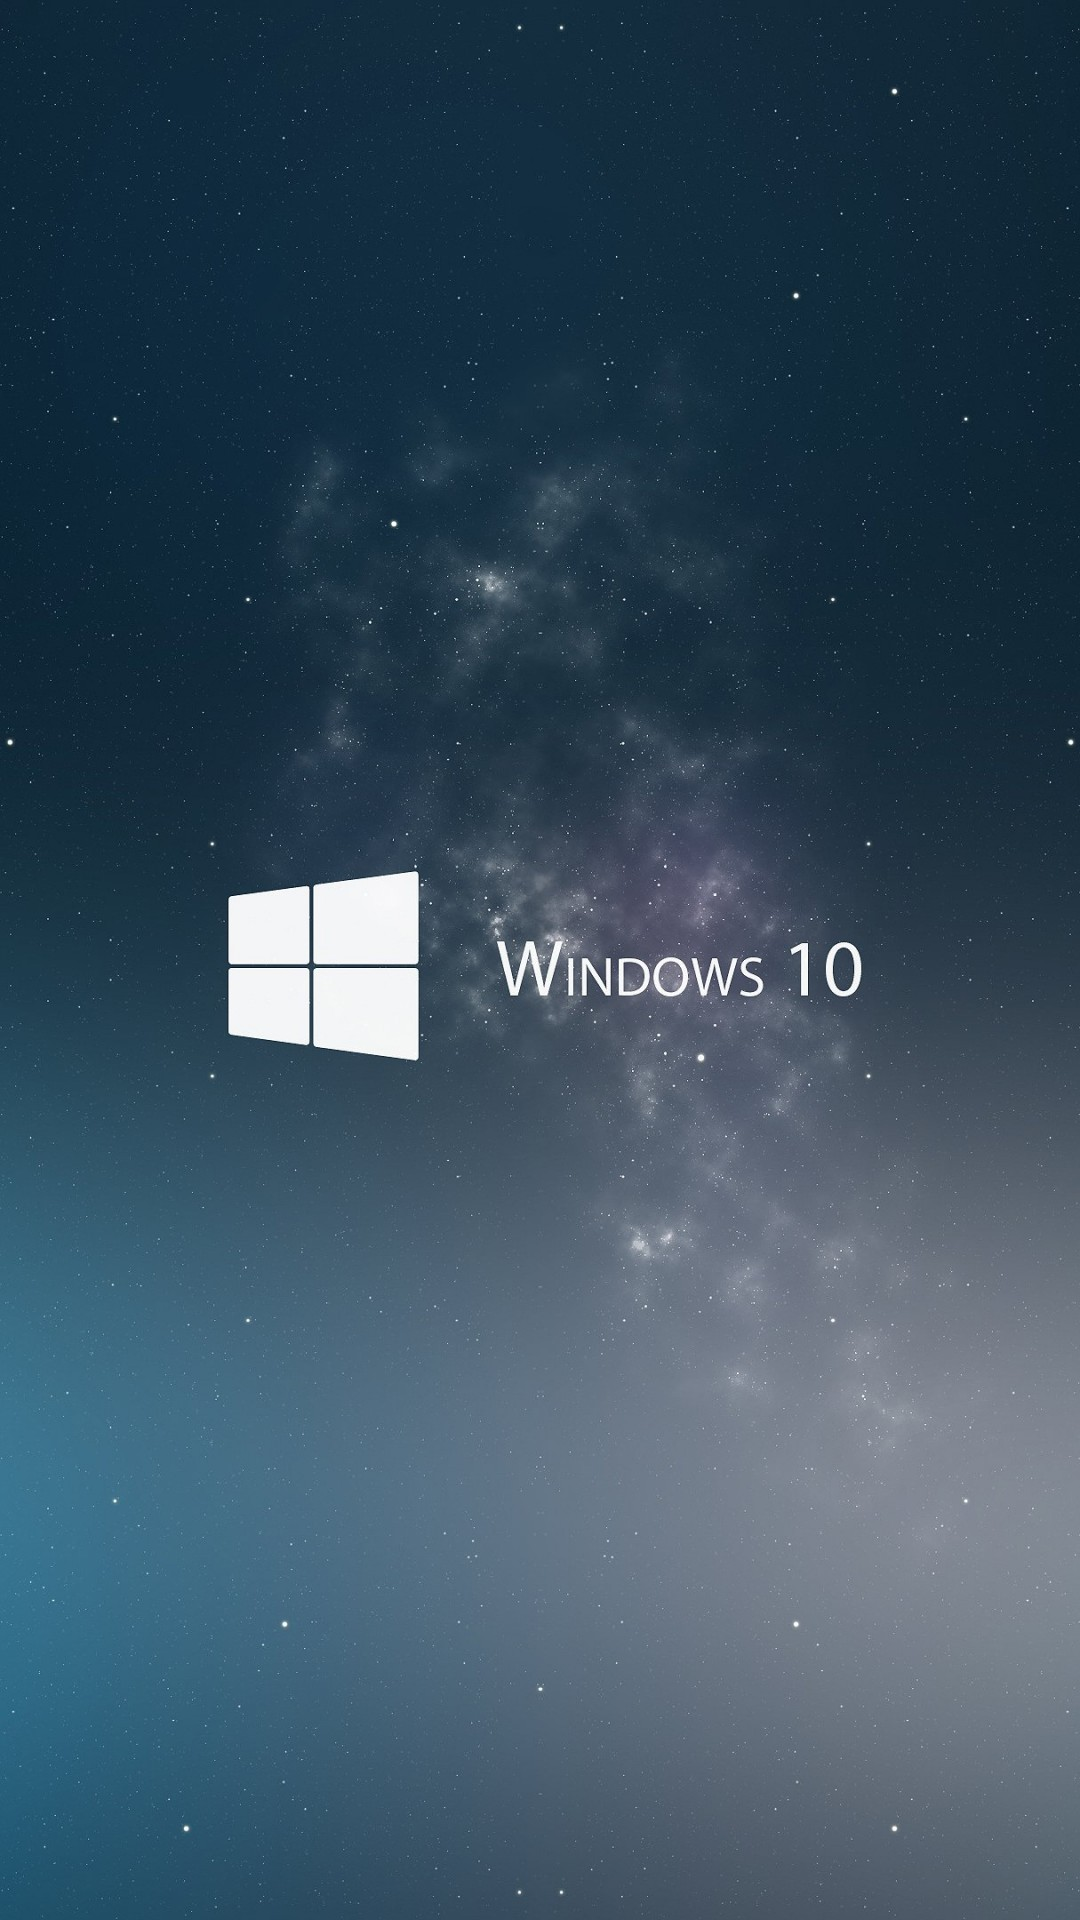 Windows 10 Wallpaper for SAMSUNG Galaxy S4